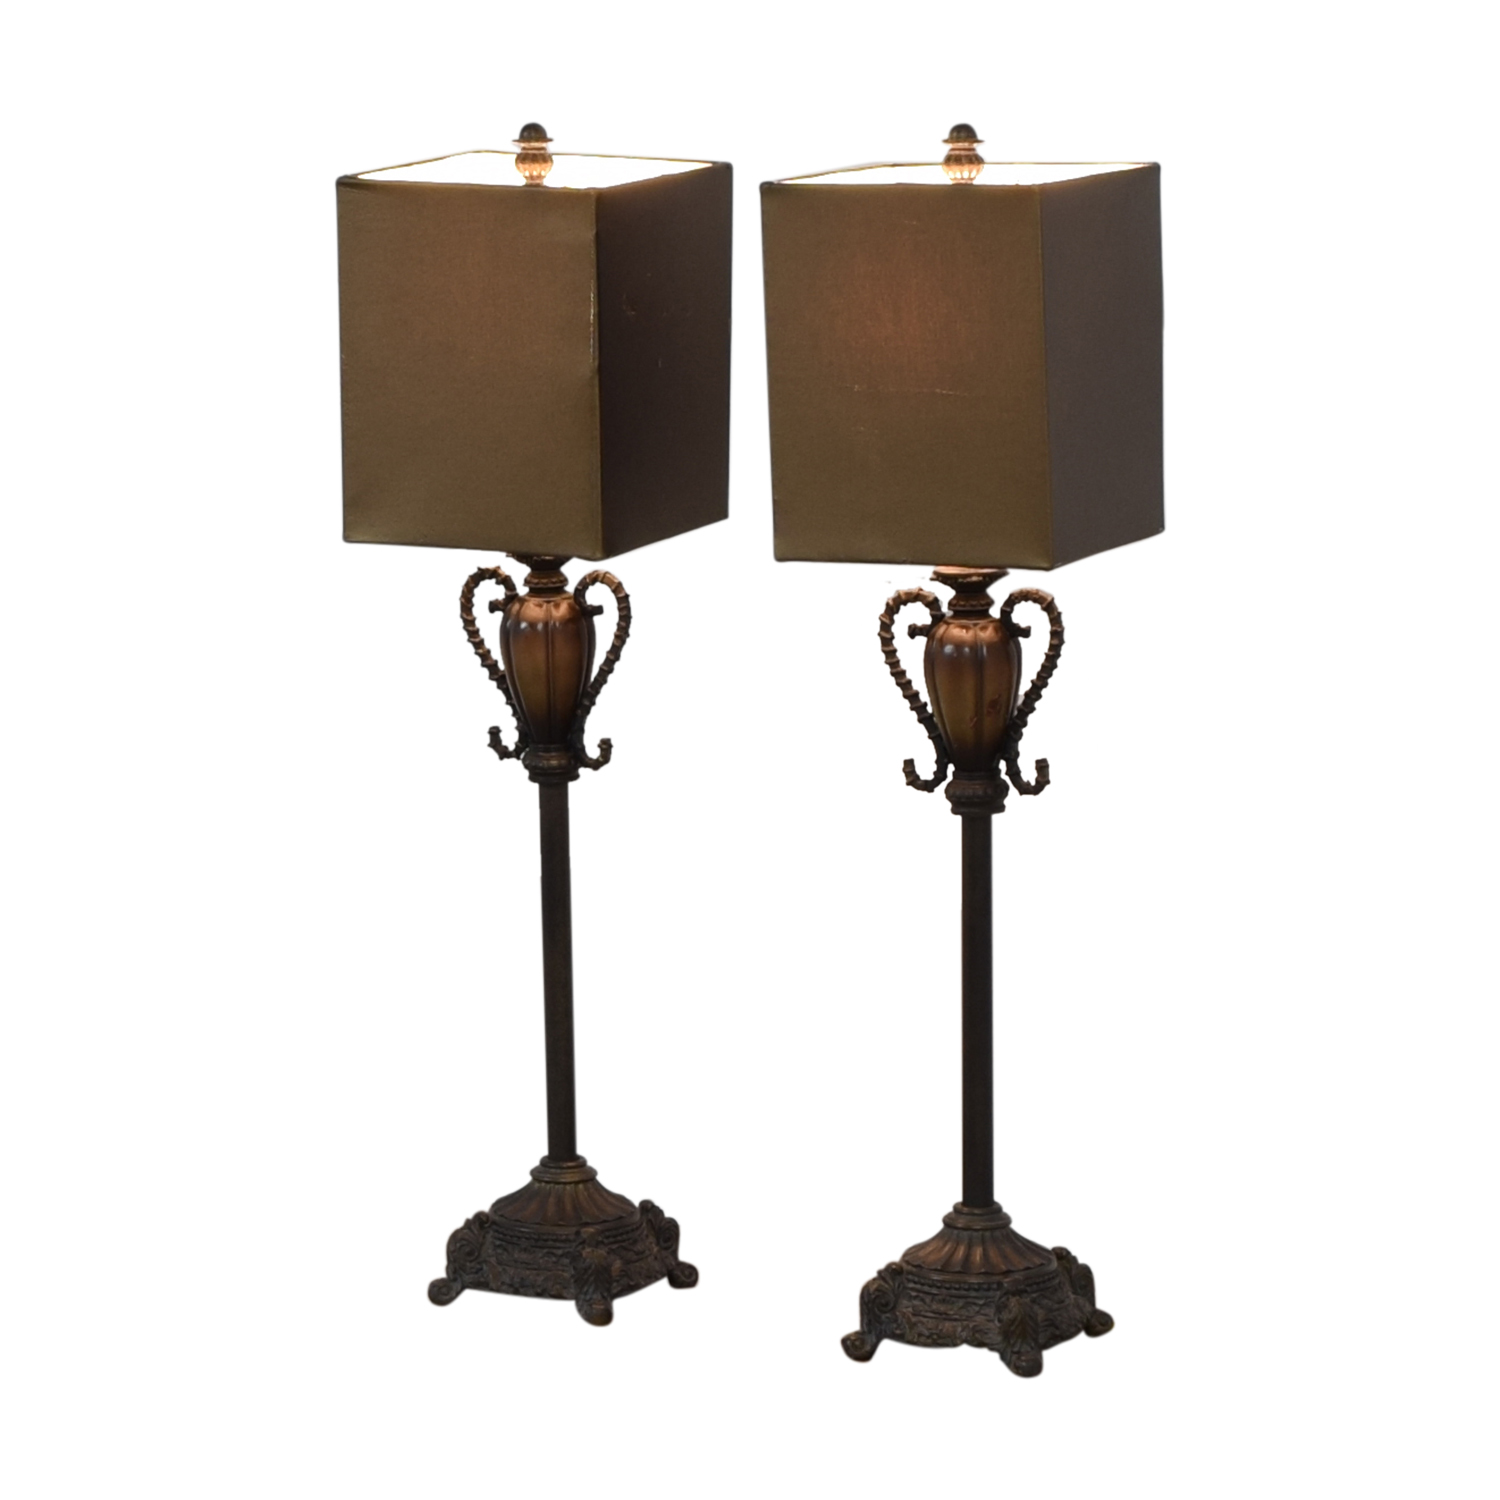 Brass and Leather Lamps Neiman Marcus